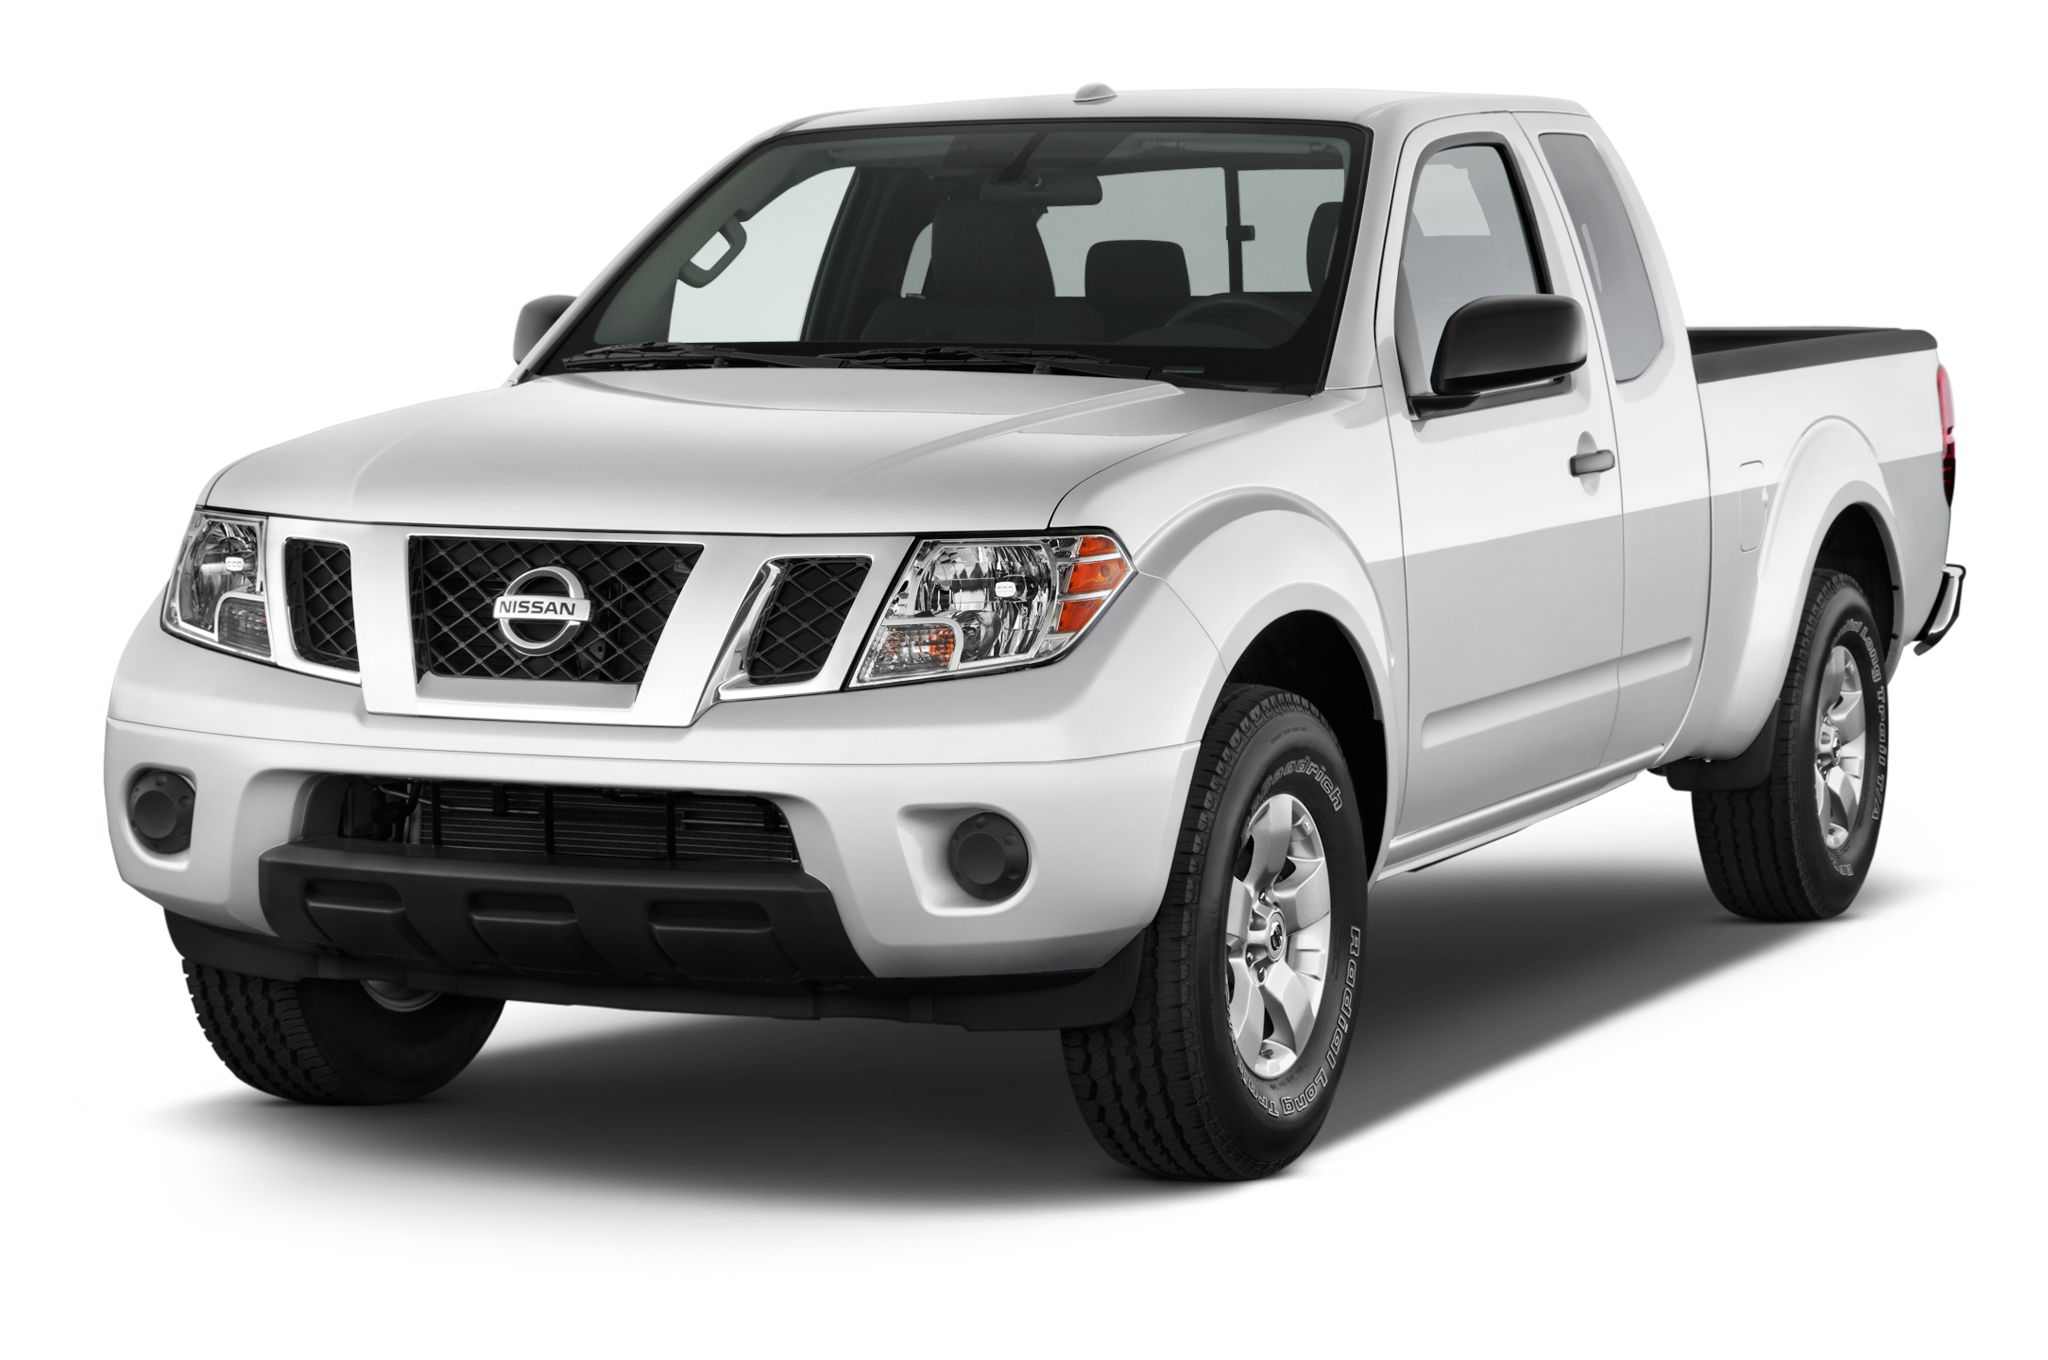 small resolution of 2014 nissan frontier automatic transmission manual transmission repair manuals final drive